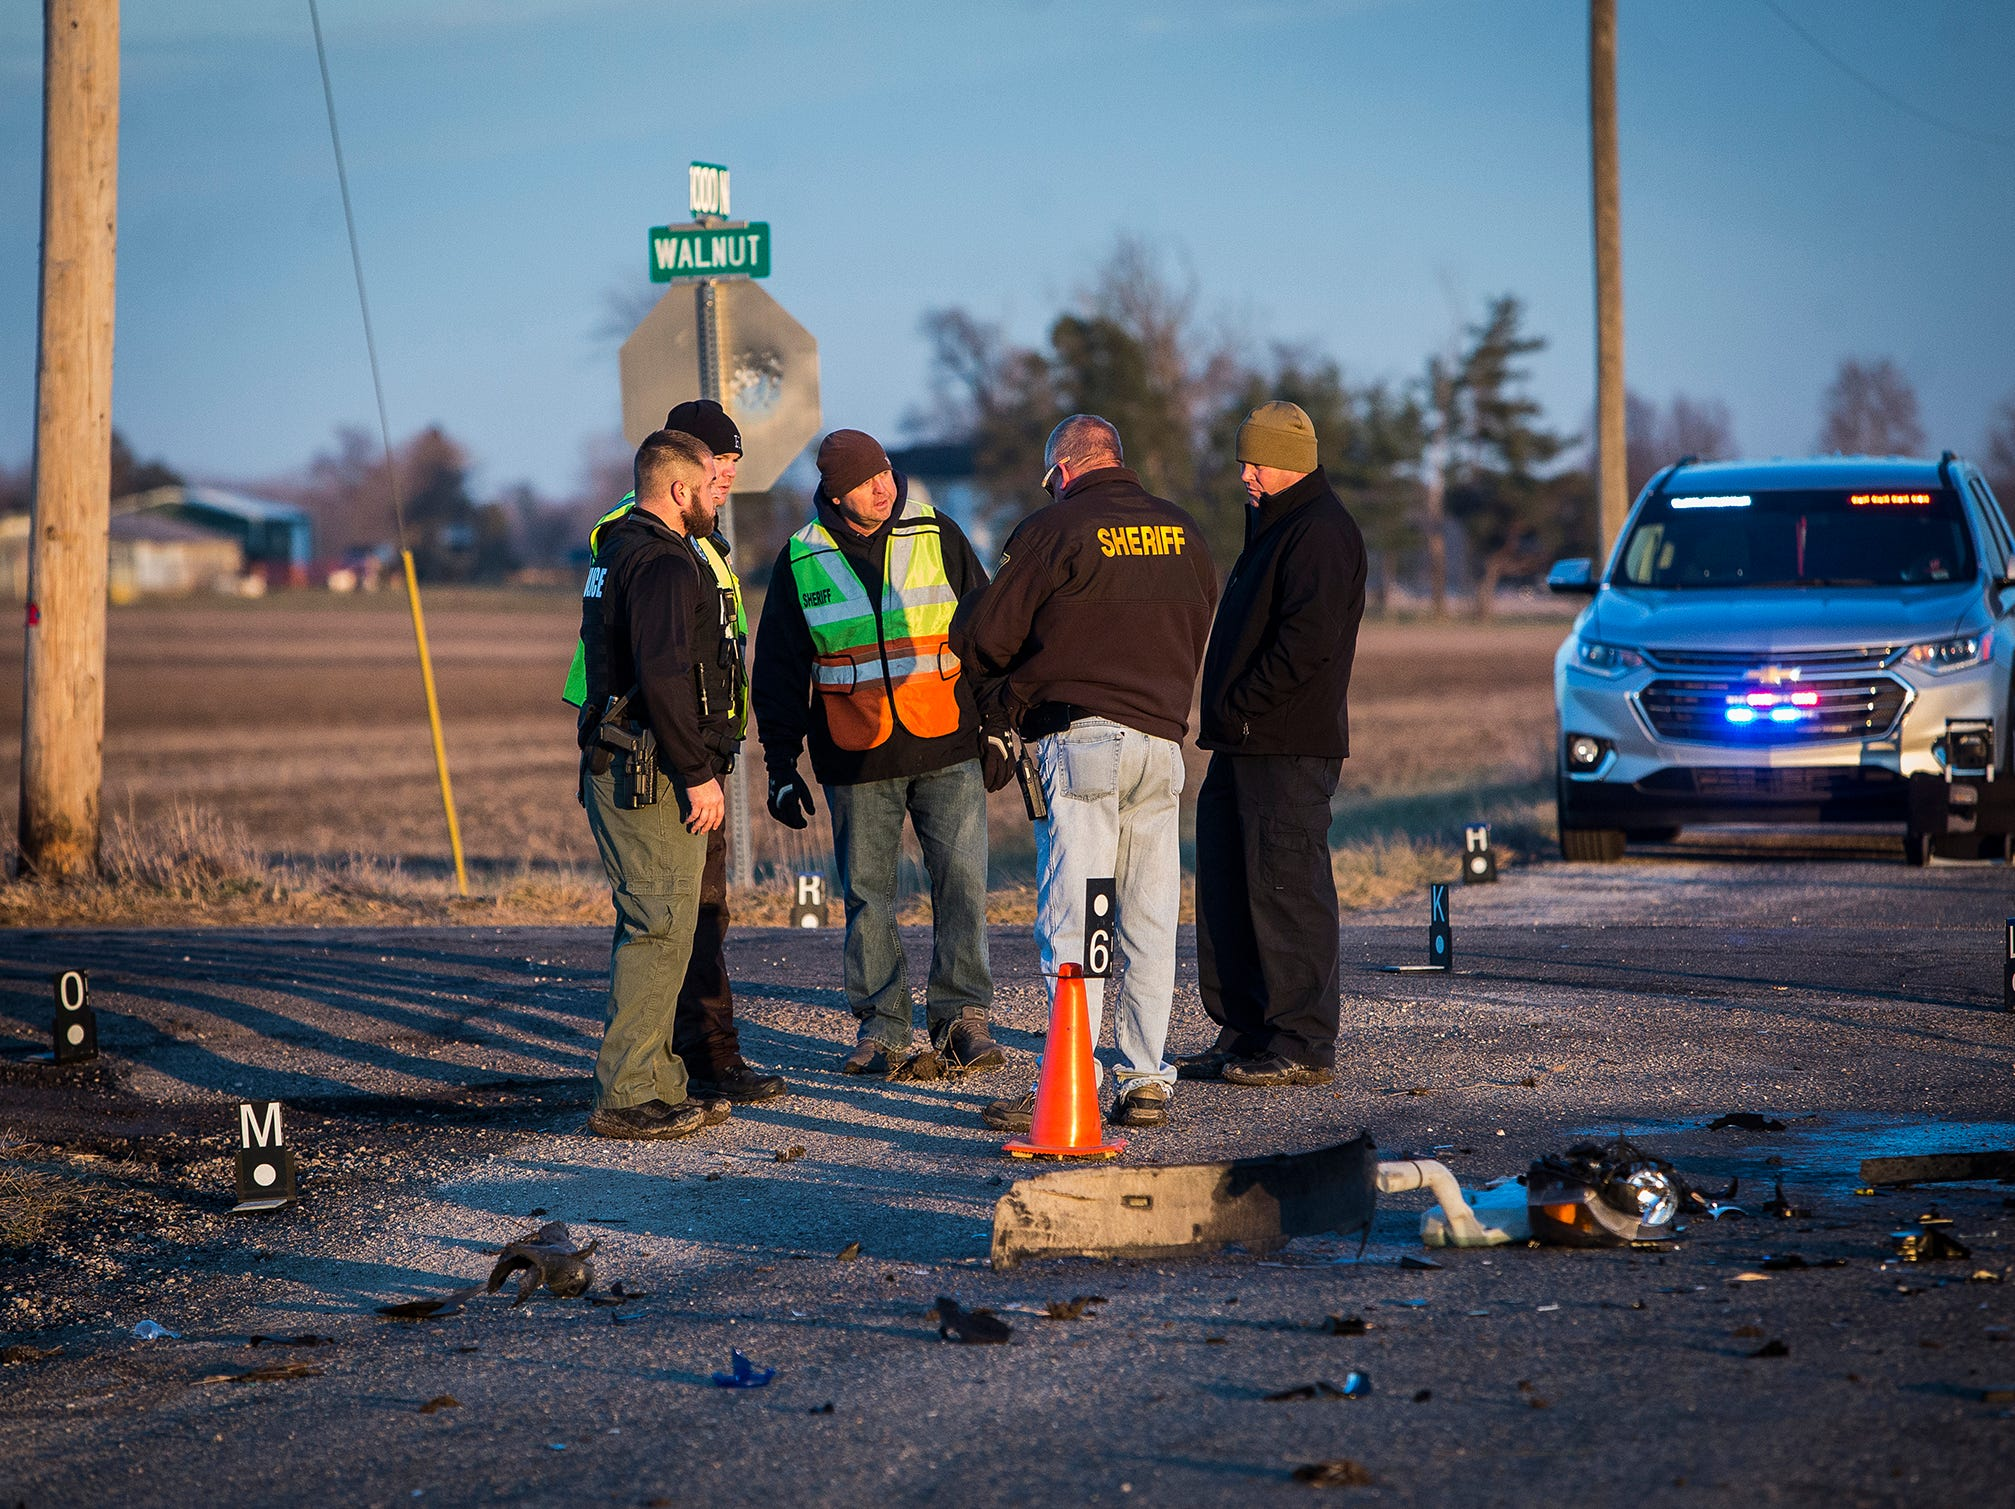 Jackson E. Pryor, 53, was killed in a two-vehicle accident at the intersection of Walnut Street and Delaware County Road 1000-N. According to officers at the scene, the Buick SUV driven by Pryor ran a stop sign at the intersection and struck a southbound van. A woman and two children in the van were transported to the hospital with non-life threatening injuries. The incident is still under investigation.